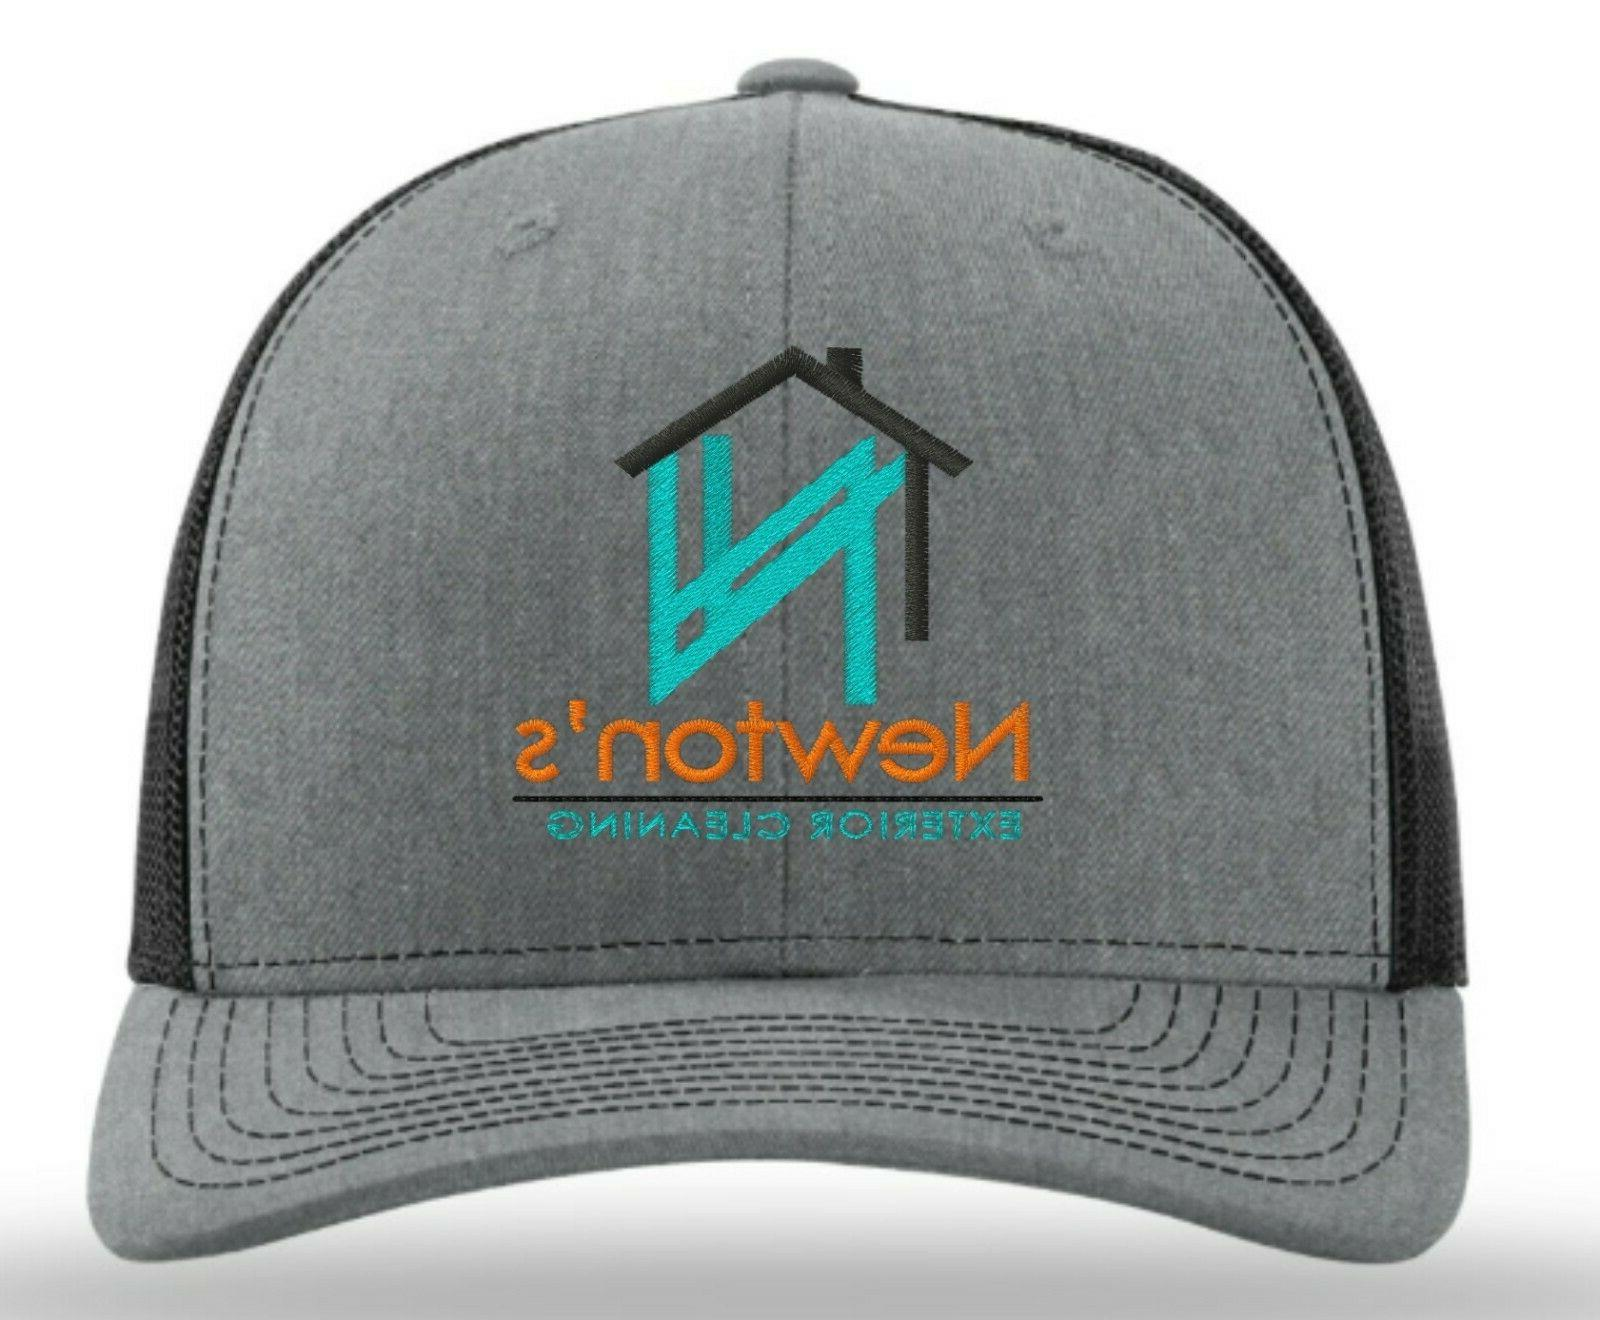 Richardson 112 Hats with your Text or Logo